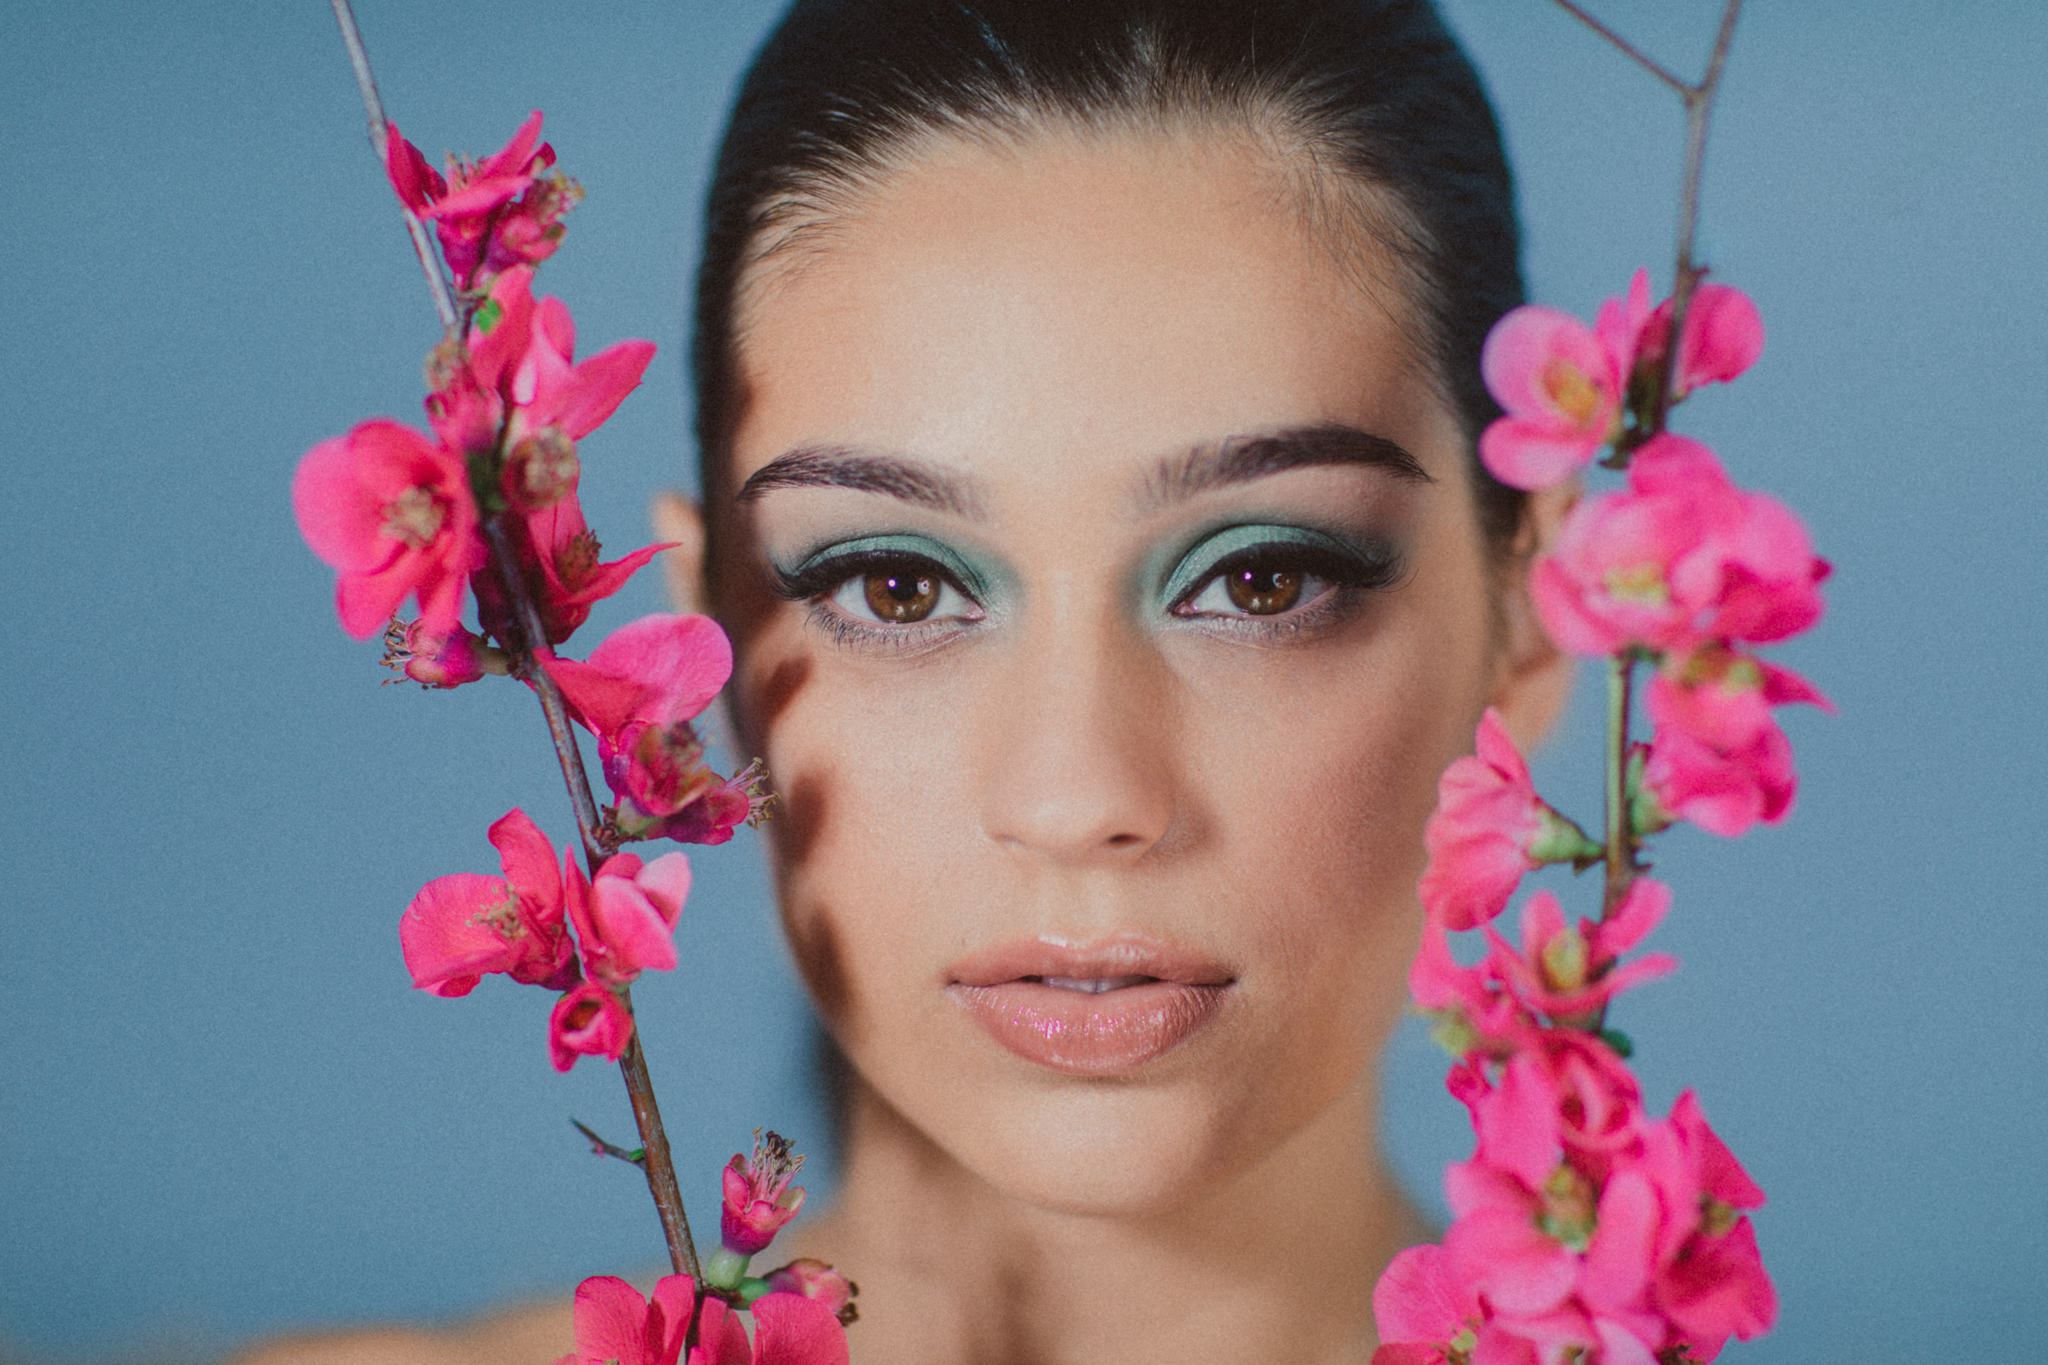 beauty and makeup products photography in melbourne